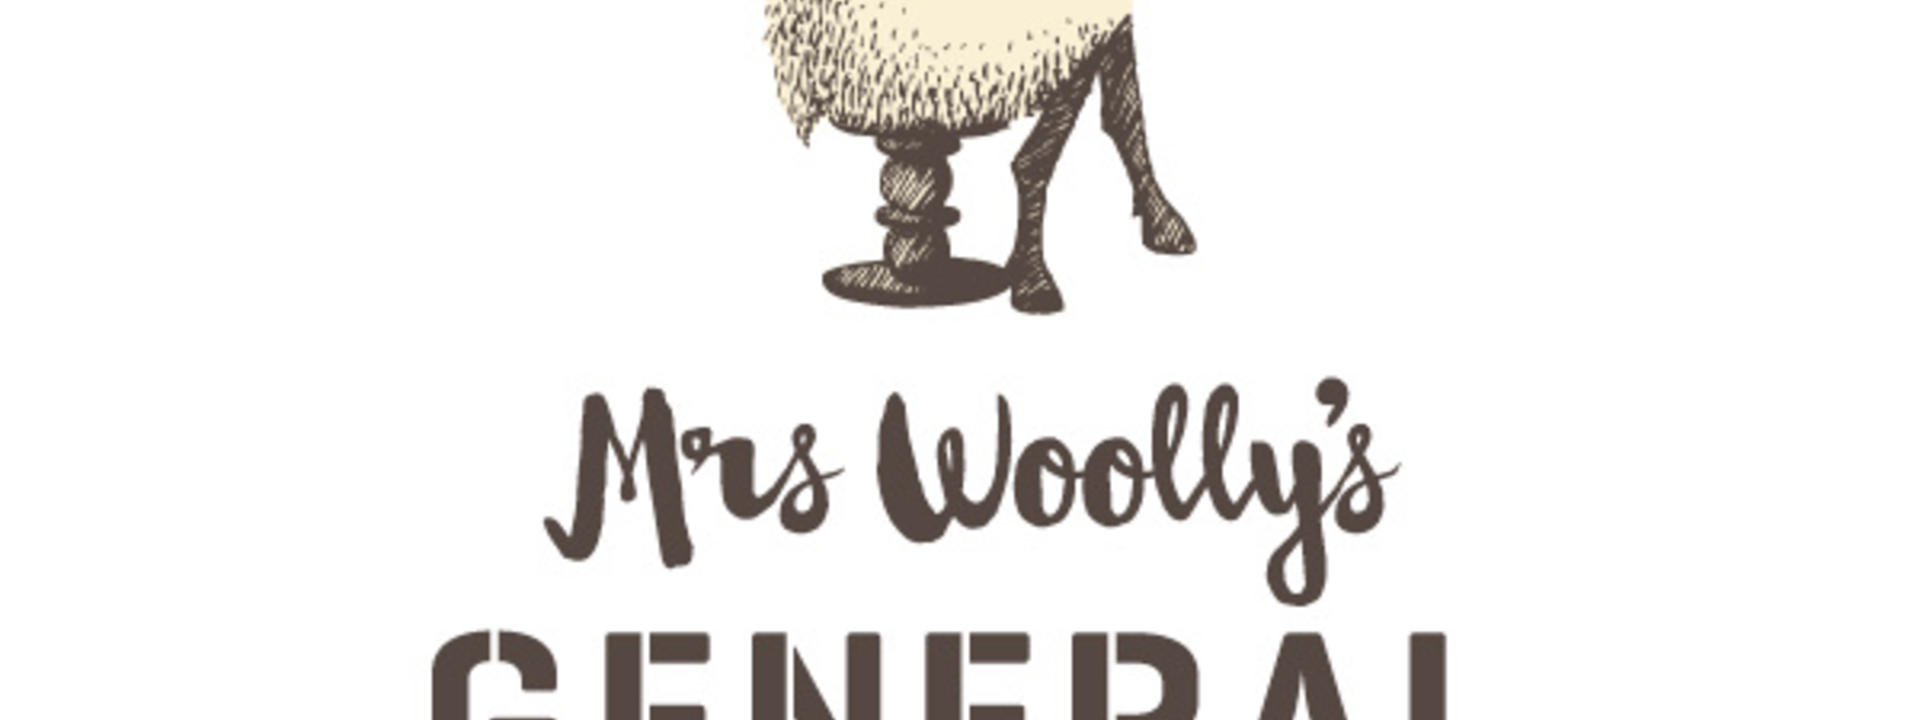 Logo: Mrs Woolly's General Store